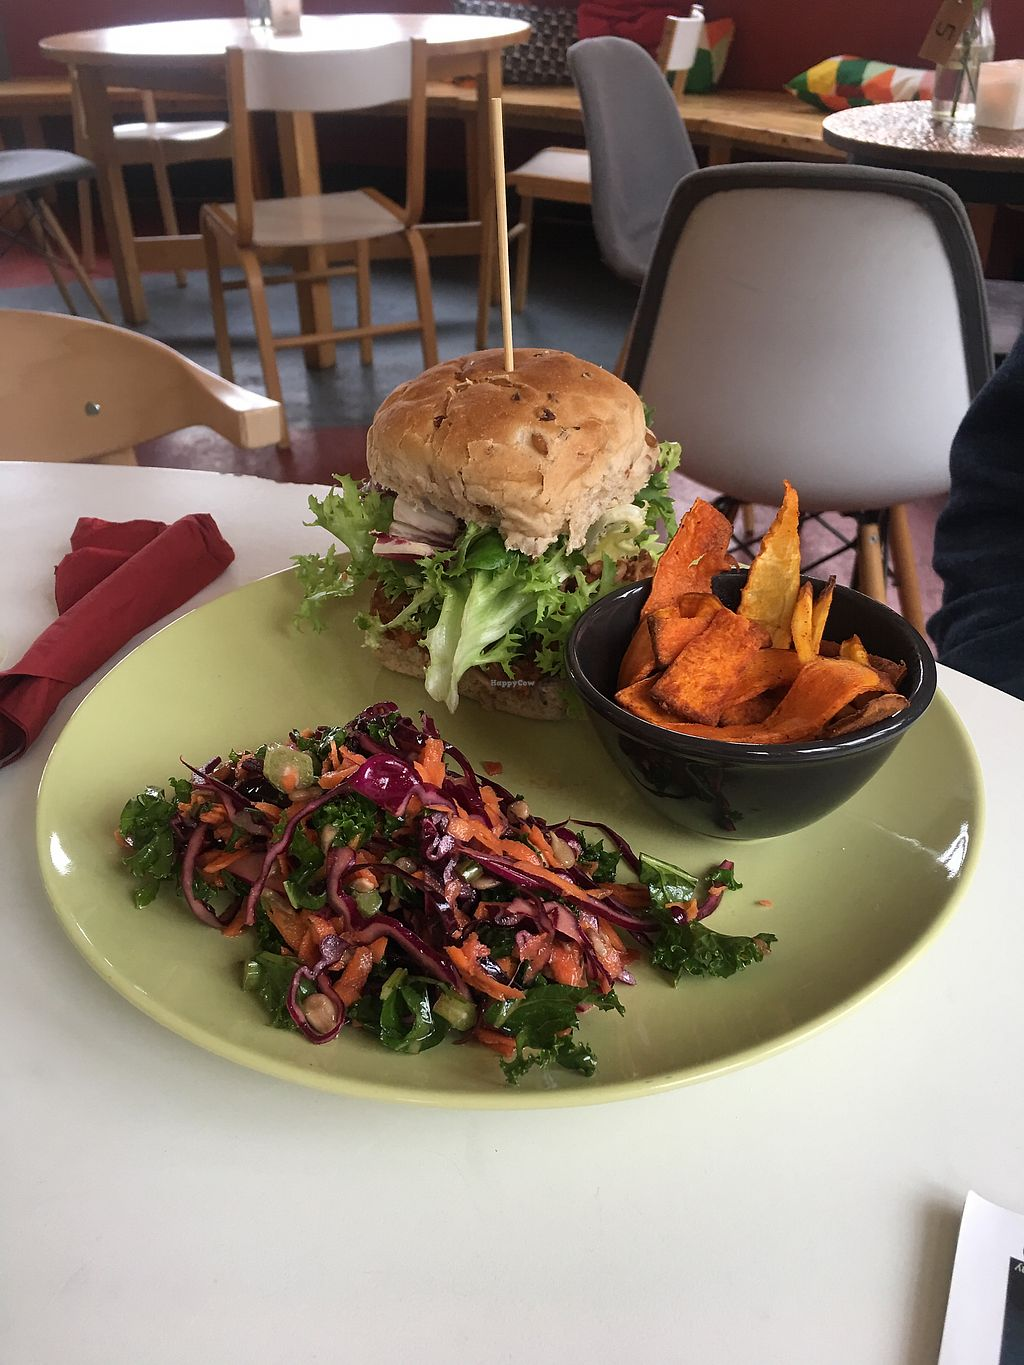 """Photo of The Old Red Bus Station  by <a href=""""/members/profile/CindyGomez"""">CindyGomez</a> <br/>Pulled Jackfruit Burger served with a Smoked BBQ Sauce <br/> June 28, 2017  - <a href='/contact/abuse/image/92881/274267'>Report</a>"""